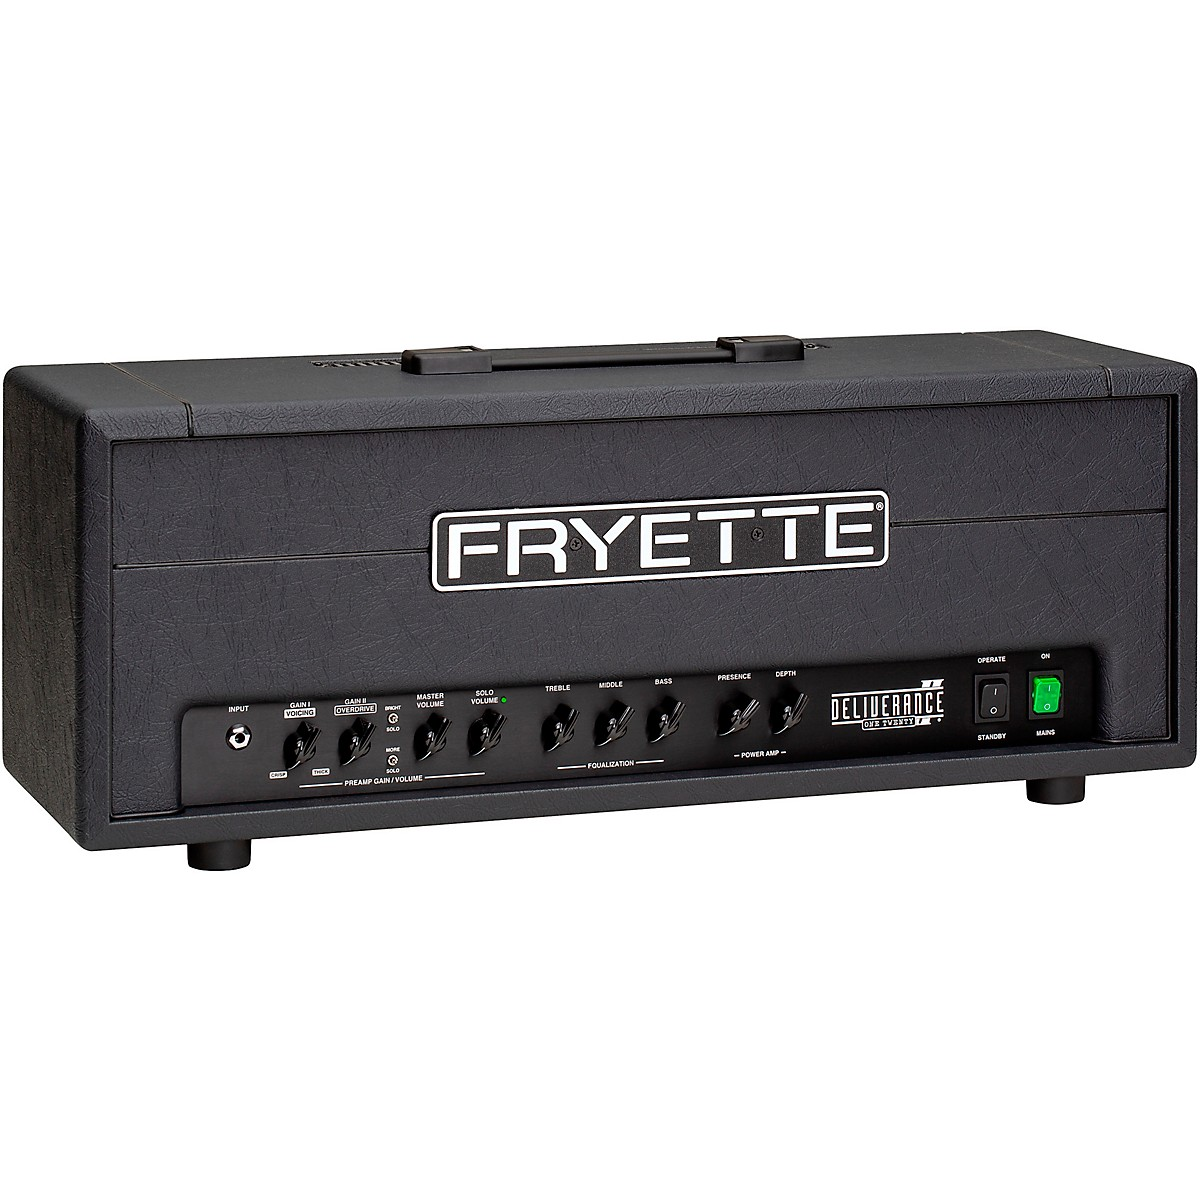 Fryette Deliverance D120 Series II 120W Tube Guitar Amp Head